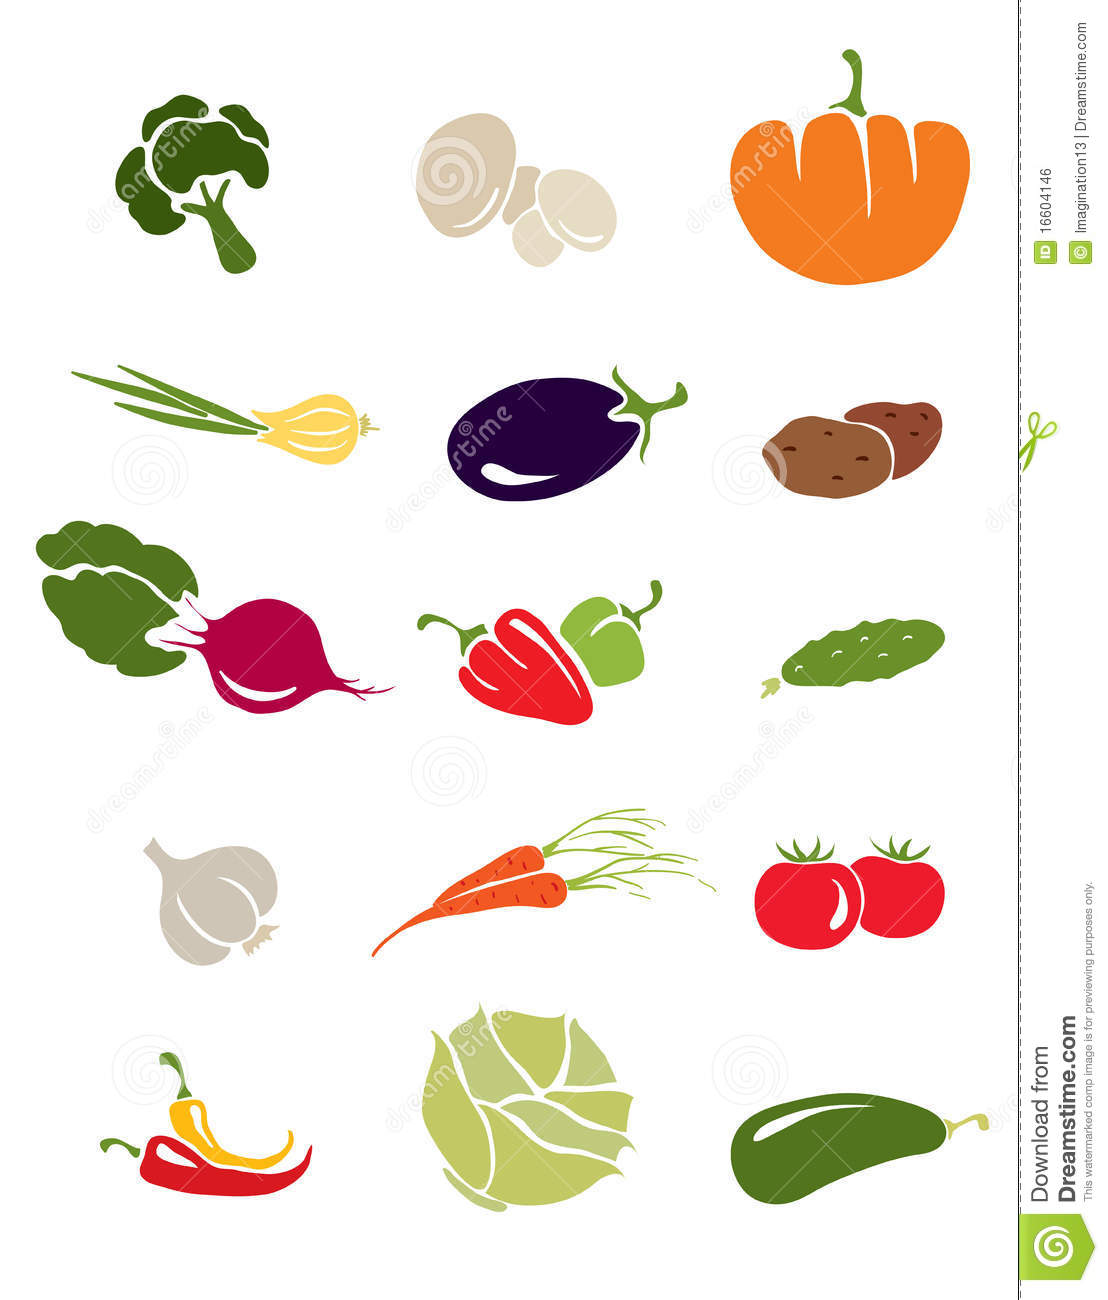 Icons -- vegetables